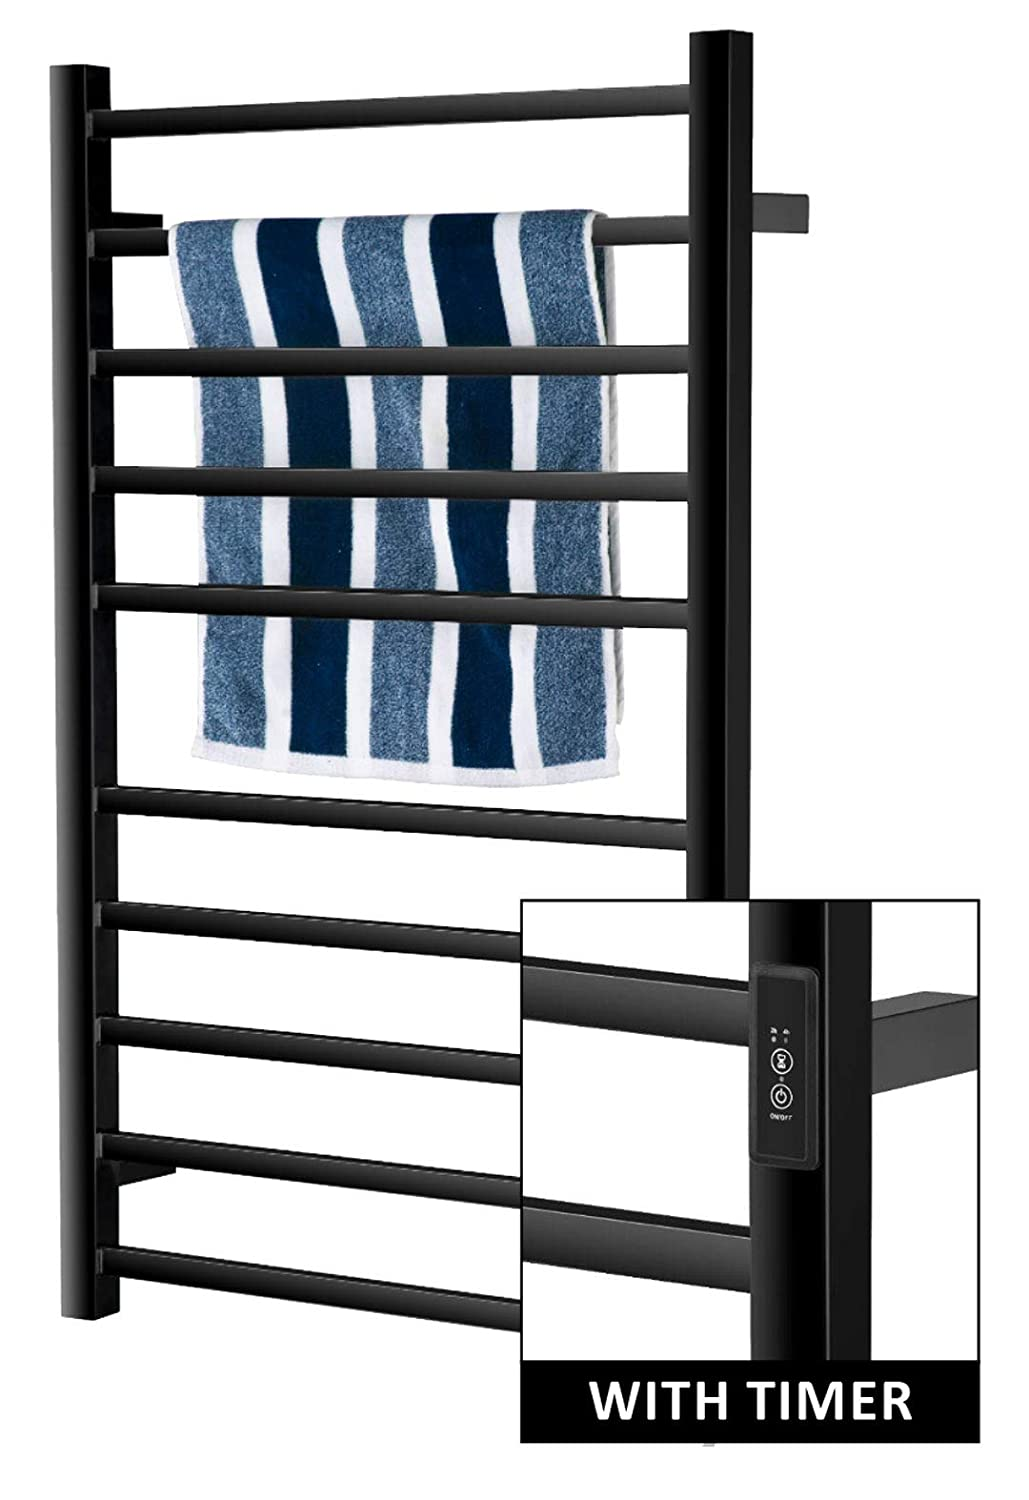 3 Timer Modes: ON//Off 4 H Carbon Steel Power Coated Built-in Timer with Led Indicators 10 Bars Wall Mounted 2 H Towel Warmer